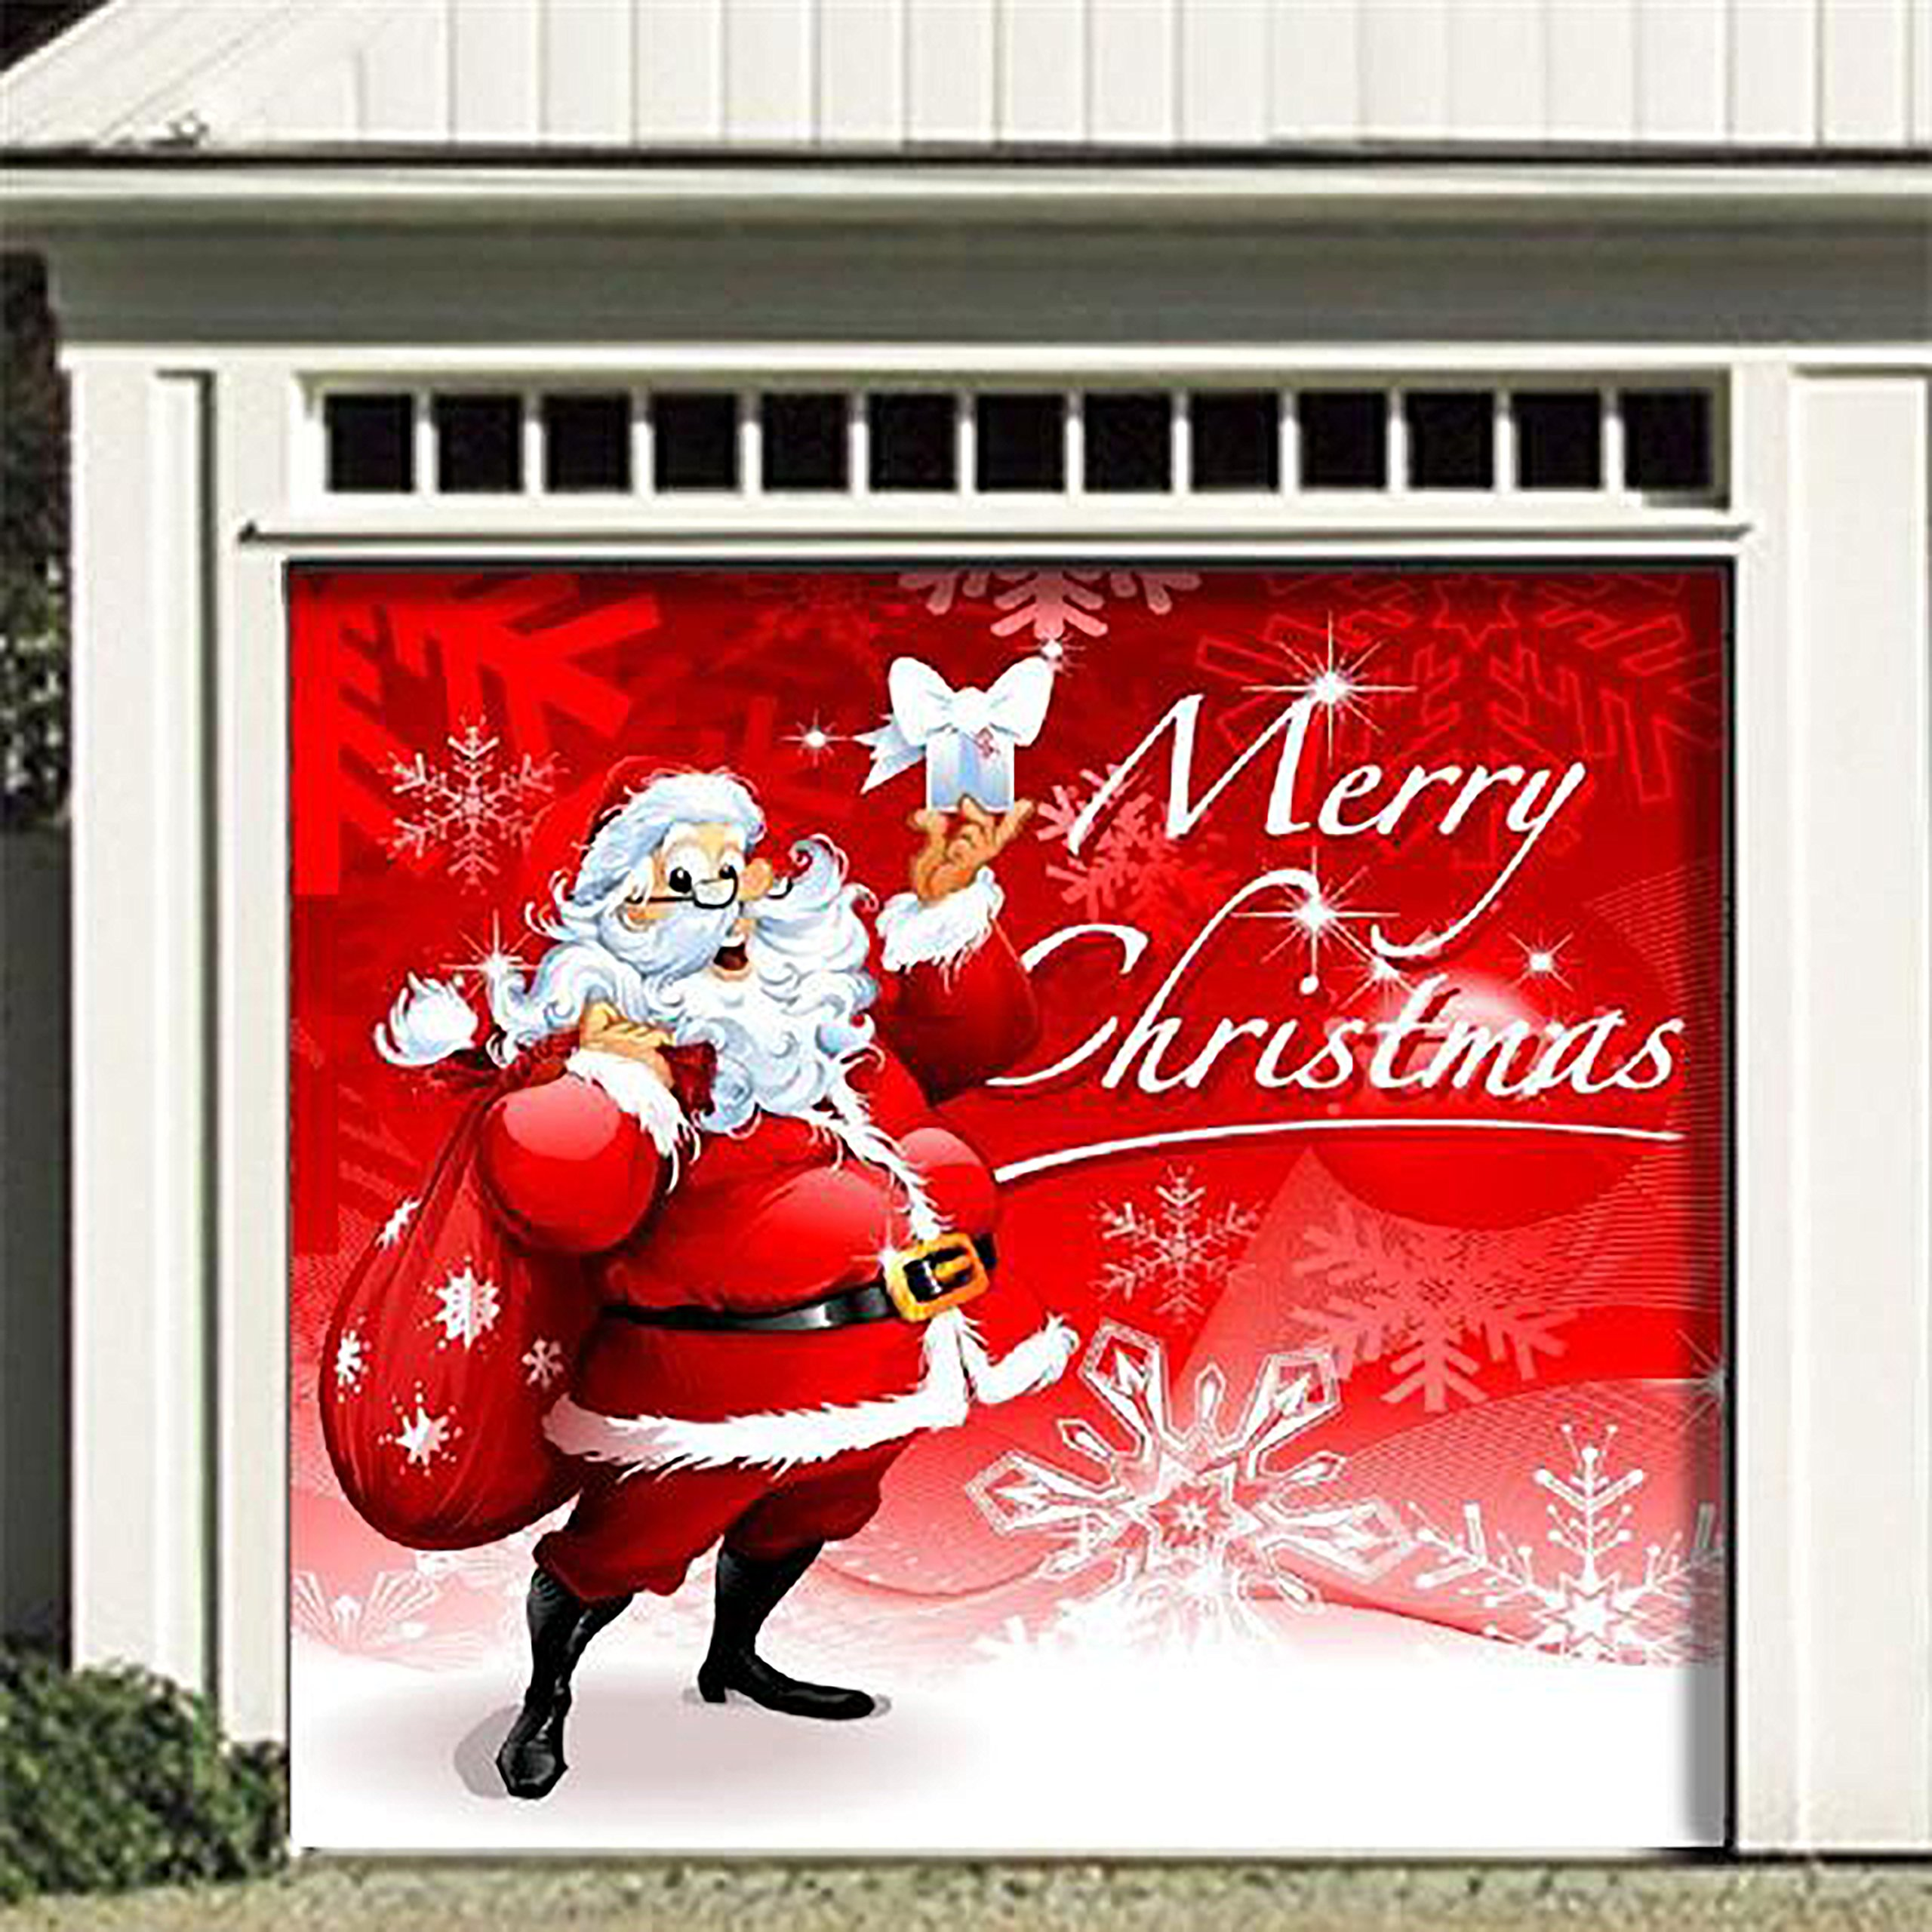 Outdoor Christmas Holiday Garage Door Banner Cover Mural Décoration - Santa's Merry Christmas Holiday Garage Door Banner Décor Sign 7'x8' by Victory Corps